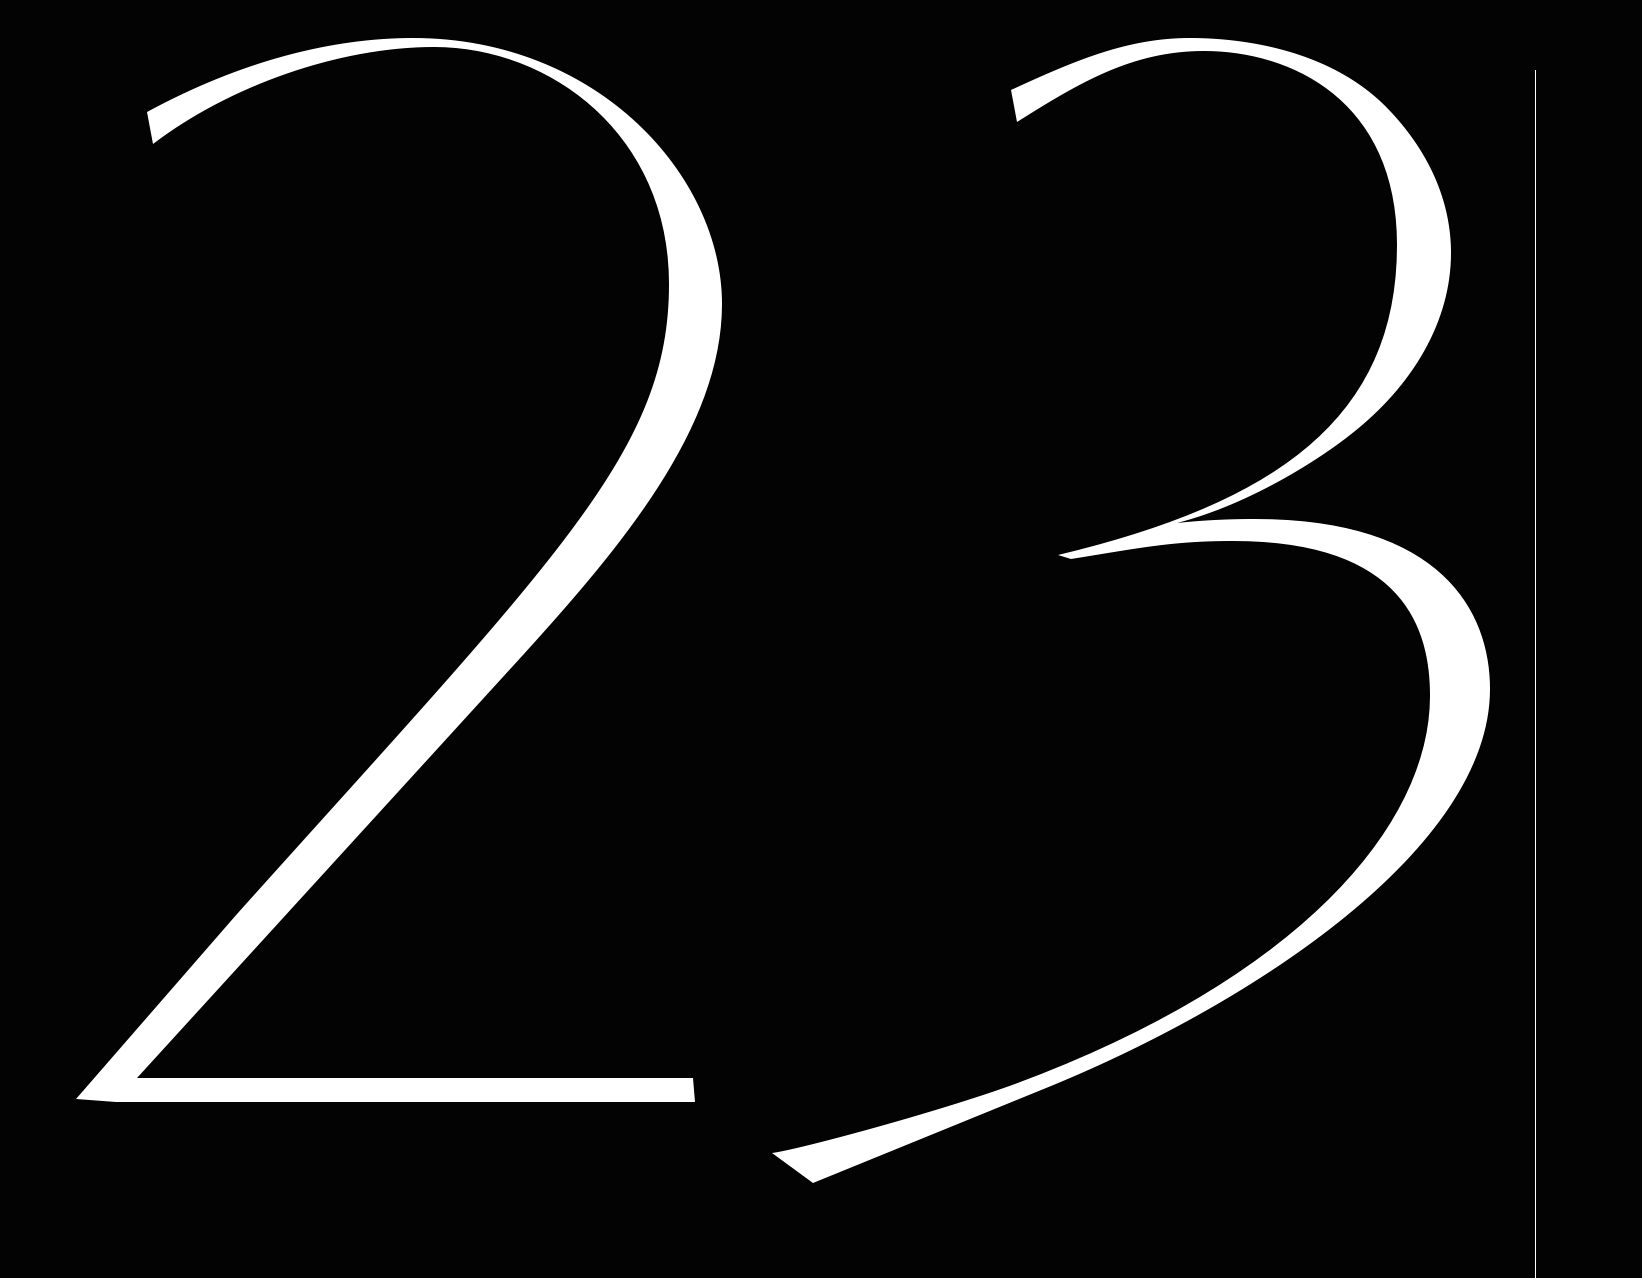 '23': Reflection Numbers